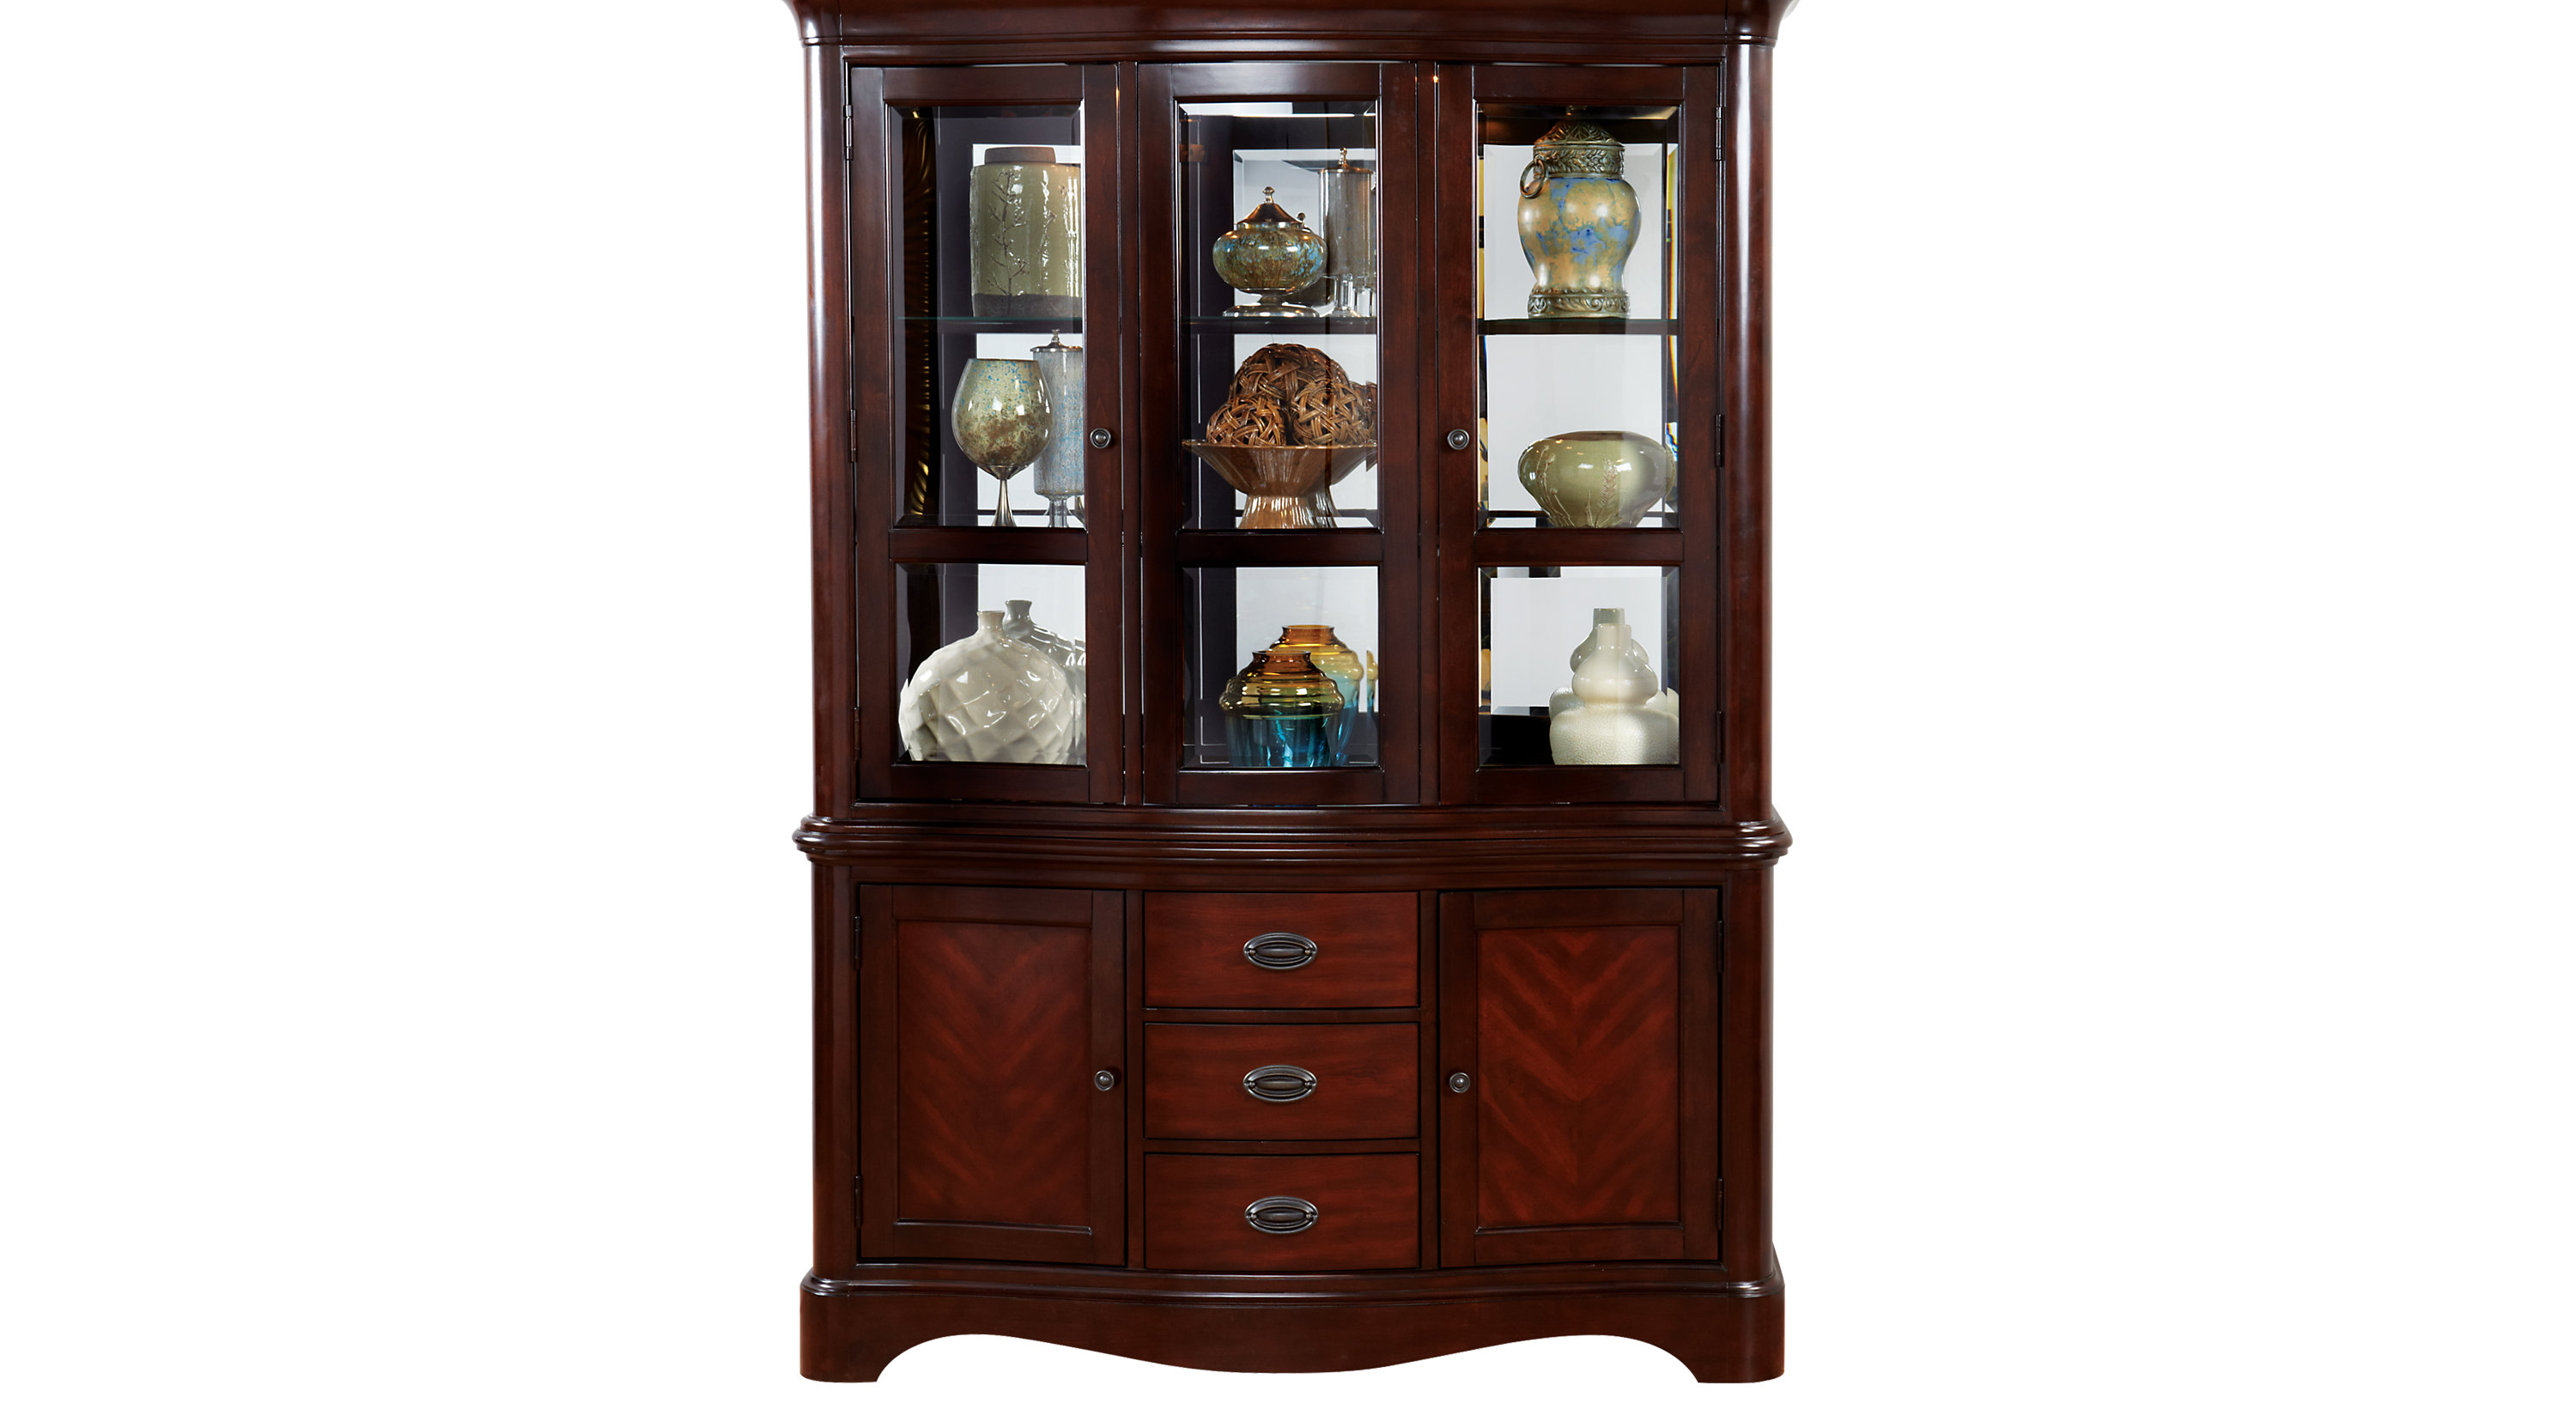 Granby Merlot reddish brown 2 Pc China Cabinet  Formal